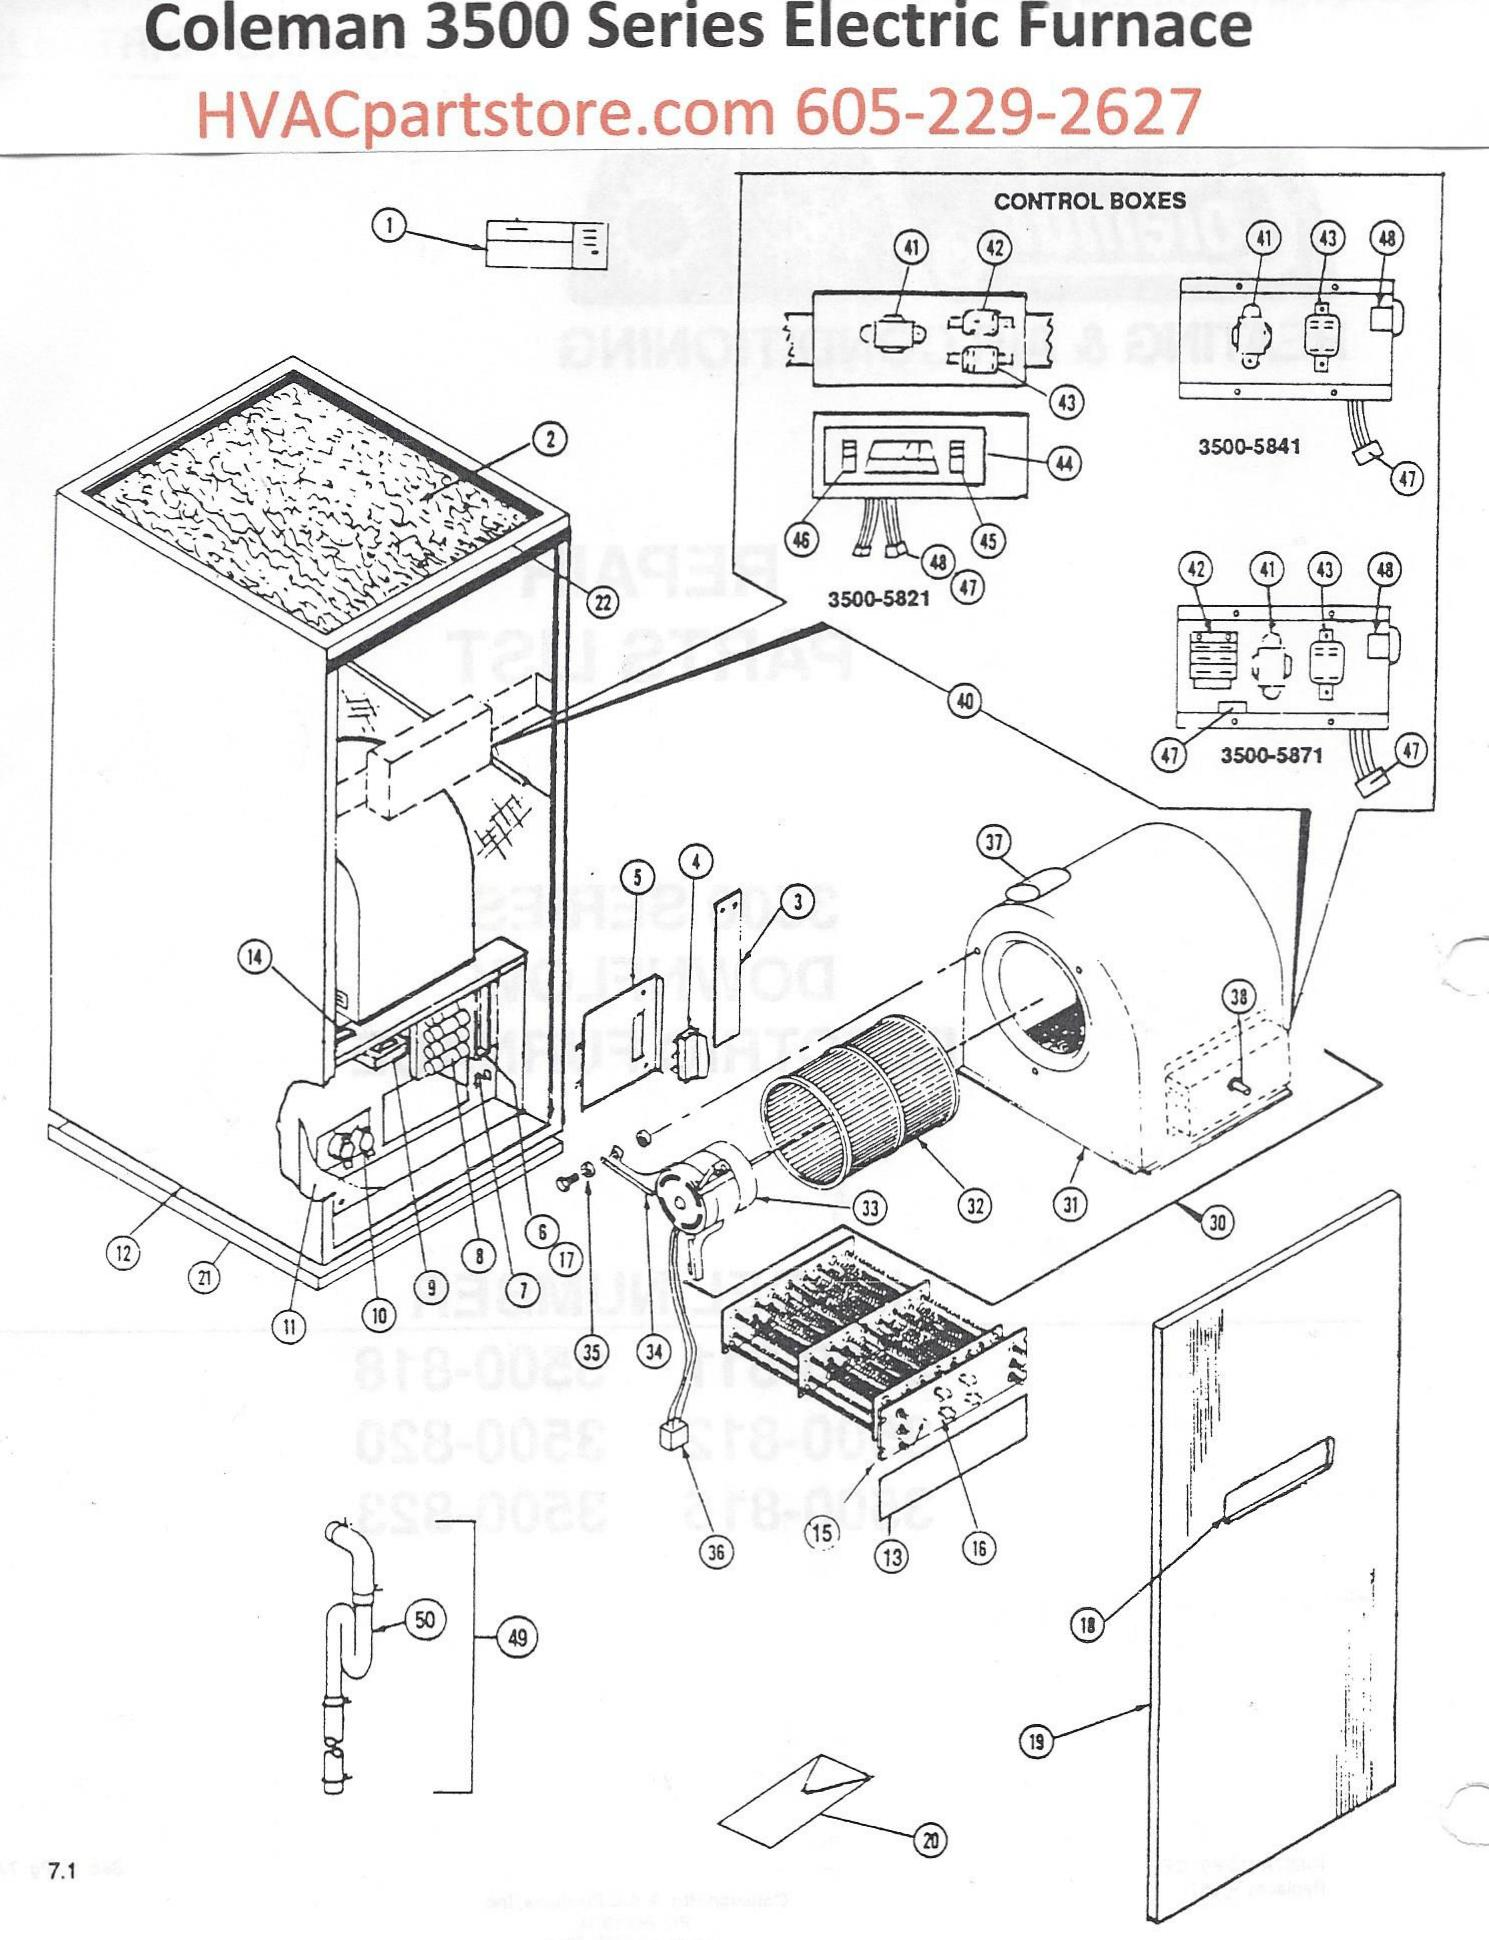 coleman furnace thermostat wiring diagram 3500-811 coleman electric furnace parts – hvacpartstore duo therm rv furnace thermostat wiring diagram ac #13